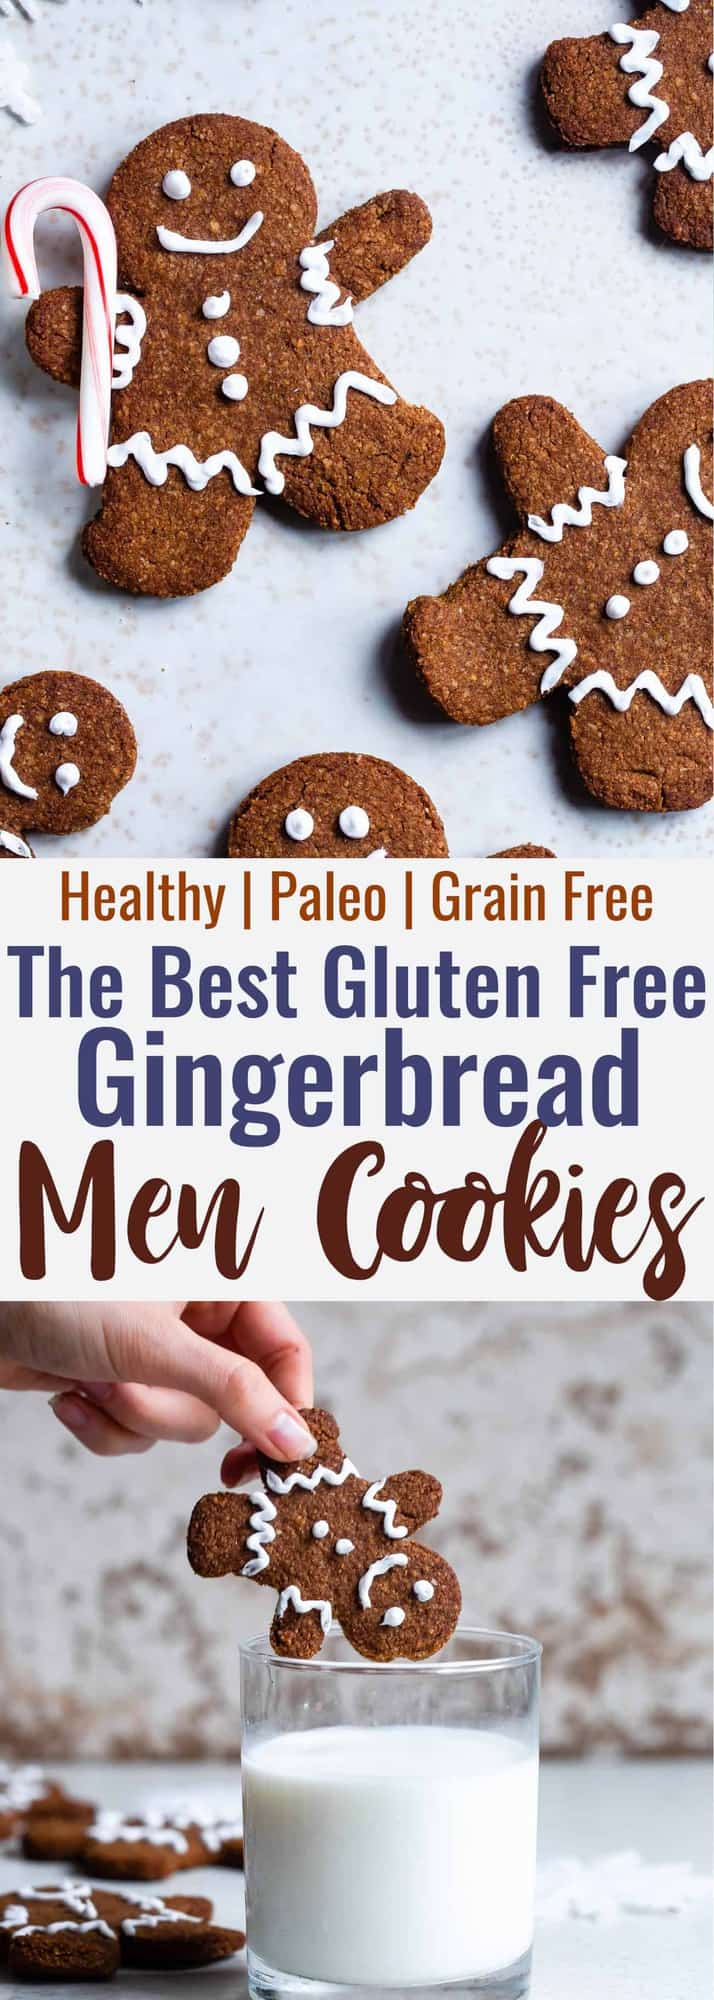 Gluten Free Paleo Healthy Gingerbread Cookies - These gingerbread cookies are perfectly spicy, sweet and crispy! An easy, delicious holiday cookie that no one will know are healthy and gluten/grain/dairy/refined sugar free! | #Foodfaithfitness | #Glutenfree #paleo #Gingerbread #healthy #dairyfree